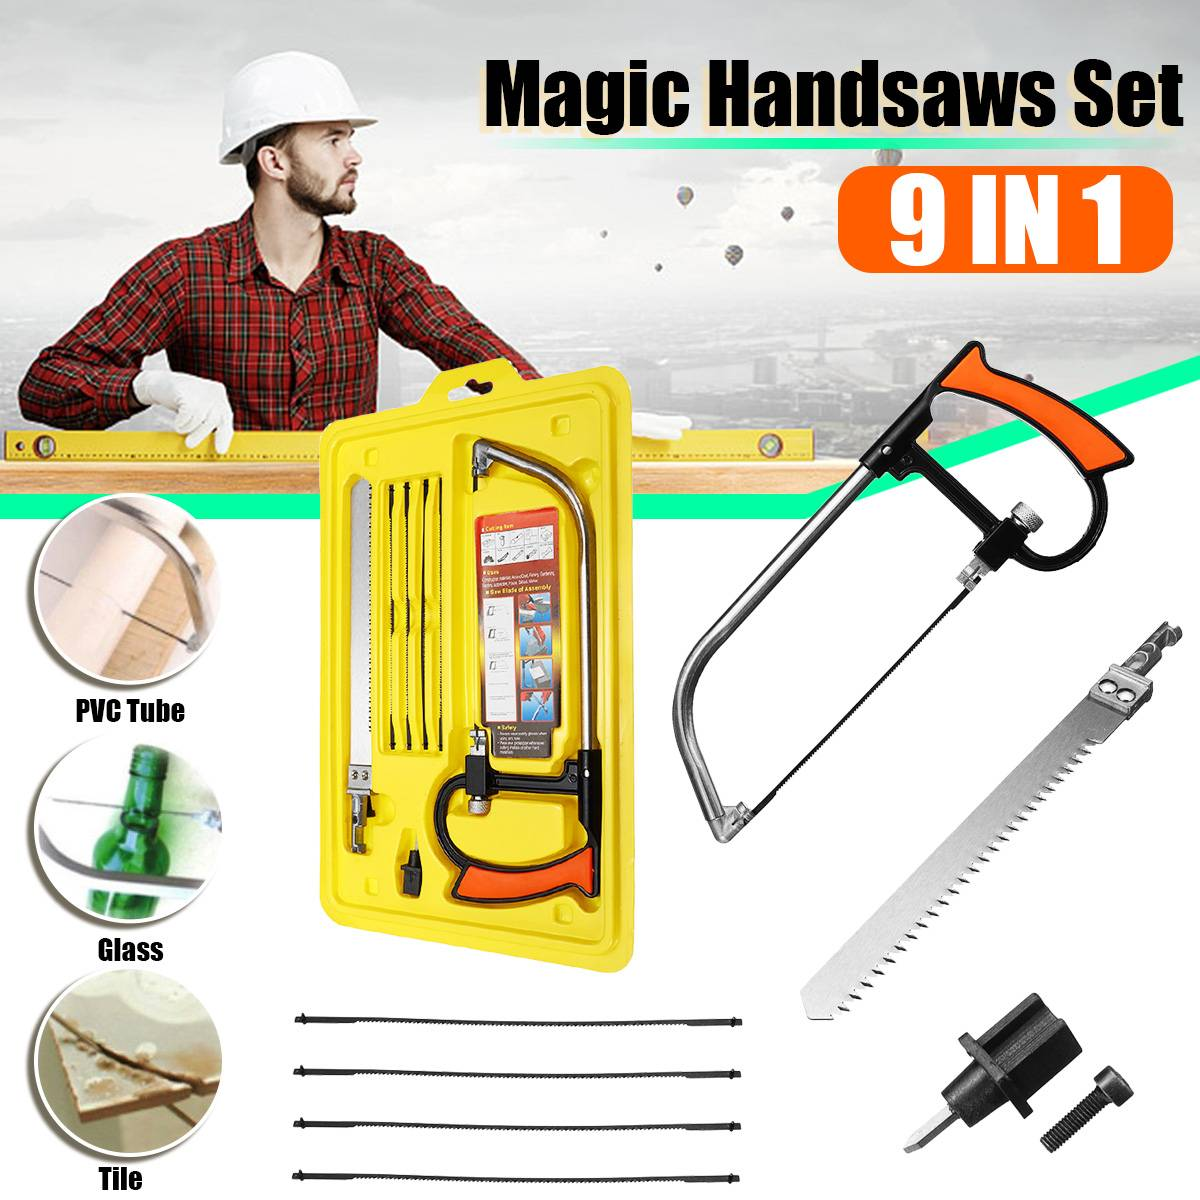 9 In 1 Abrasive Disc Handsaw Set DIY Hand Bow Saw Wooden Working Kitchen For Wood Cutting For  Sharpening Tool Set